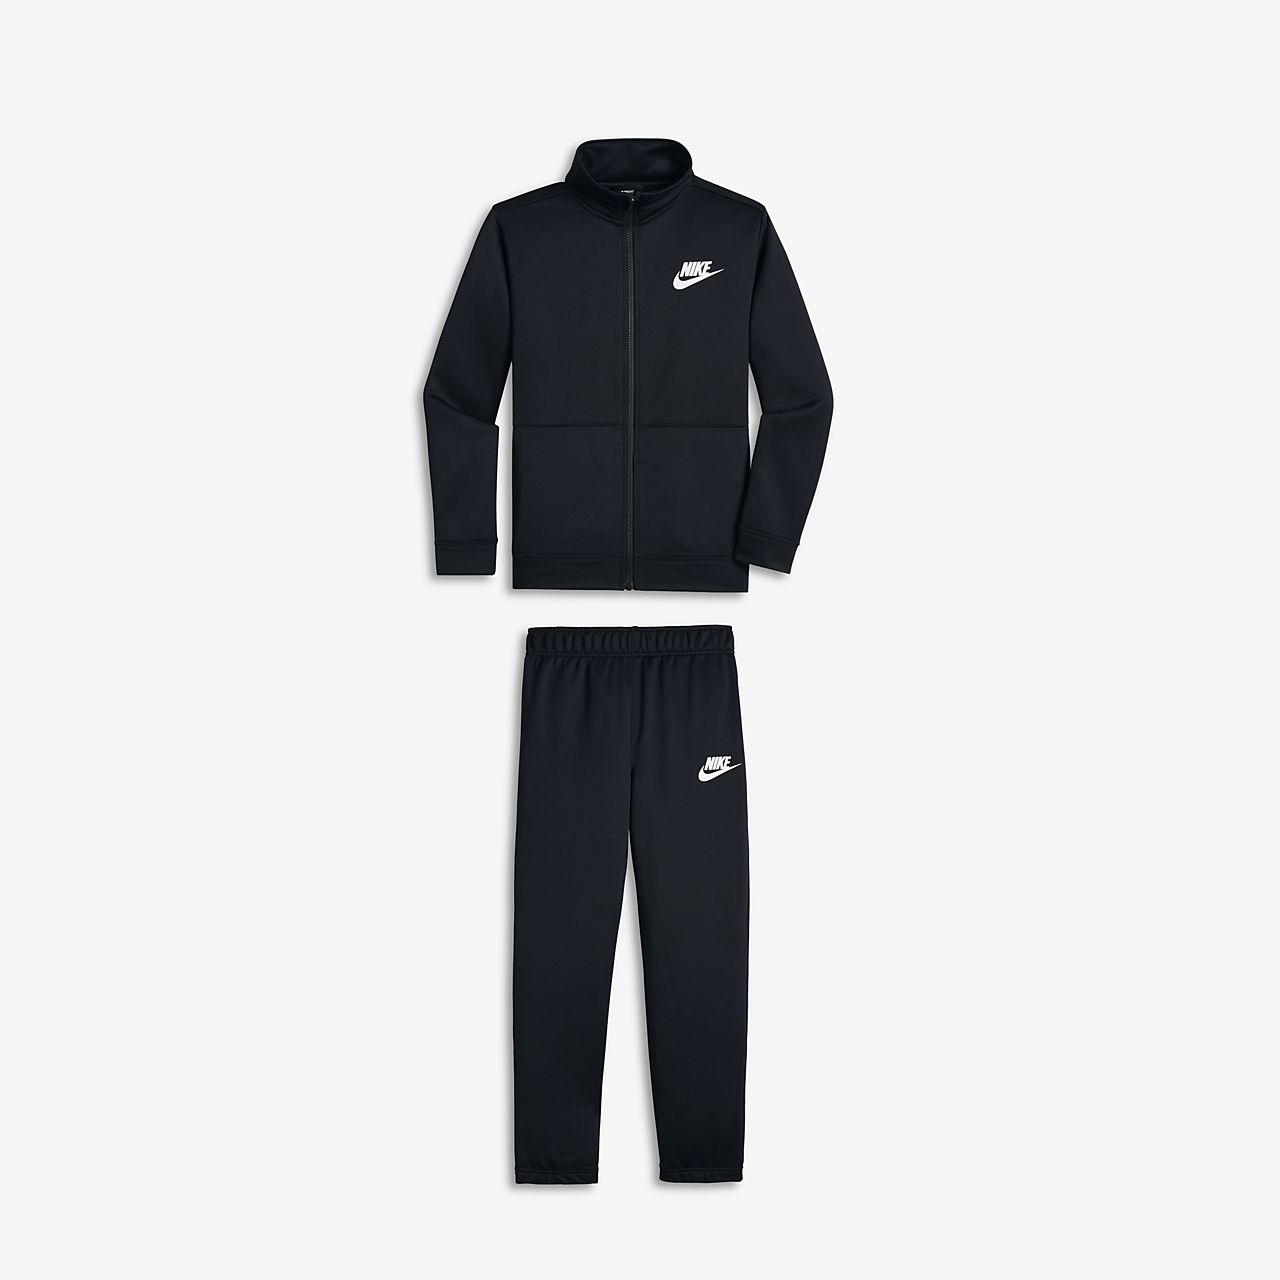 ac62e040eb6a6 Low Resolution Nike Sportswear Jungen-Trainingsanzug Nike Sportswear Jungen- Trainingsanzug